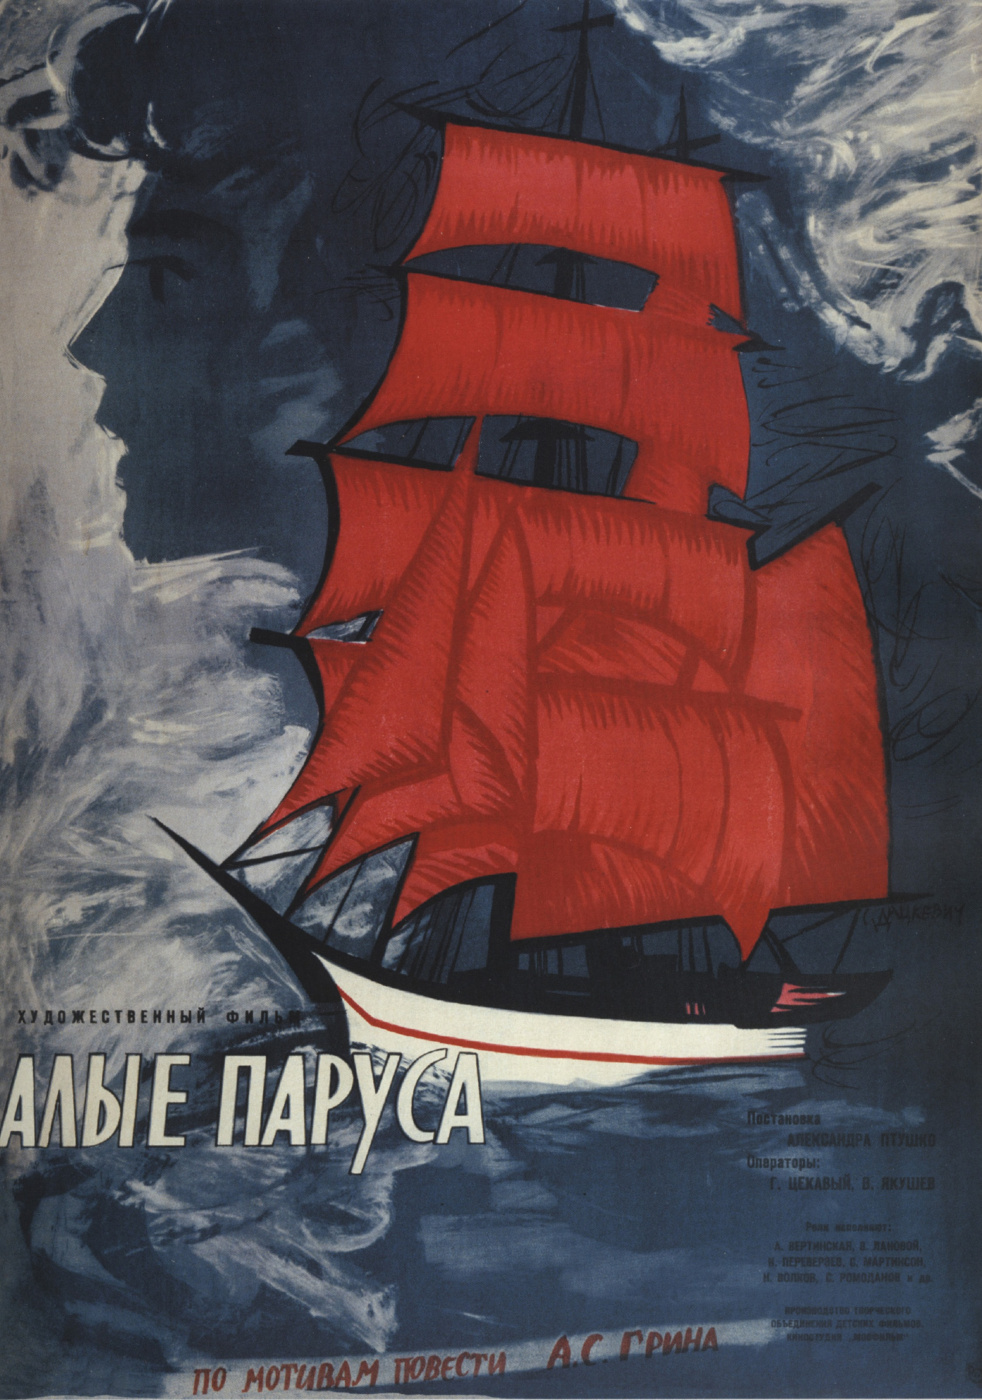 scarlet sails movie poster Russian Soviet novel cinema Grin Alexandr Ptushko